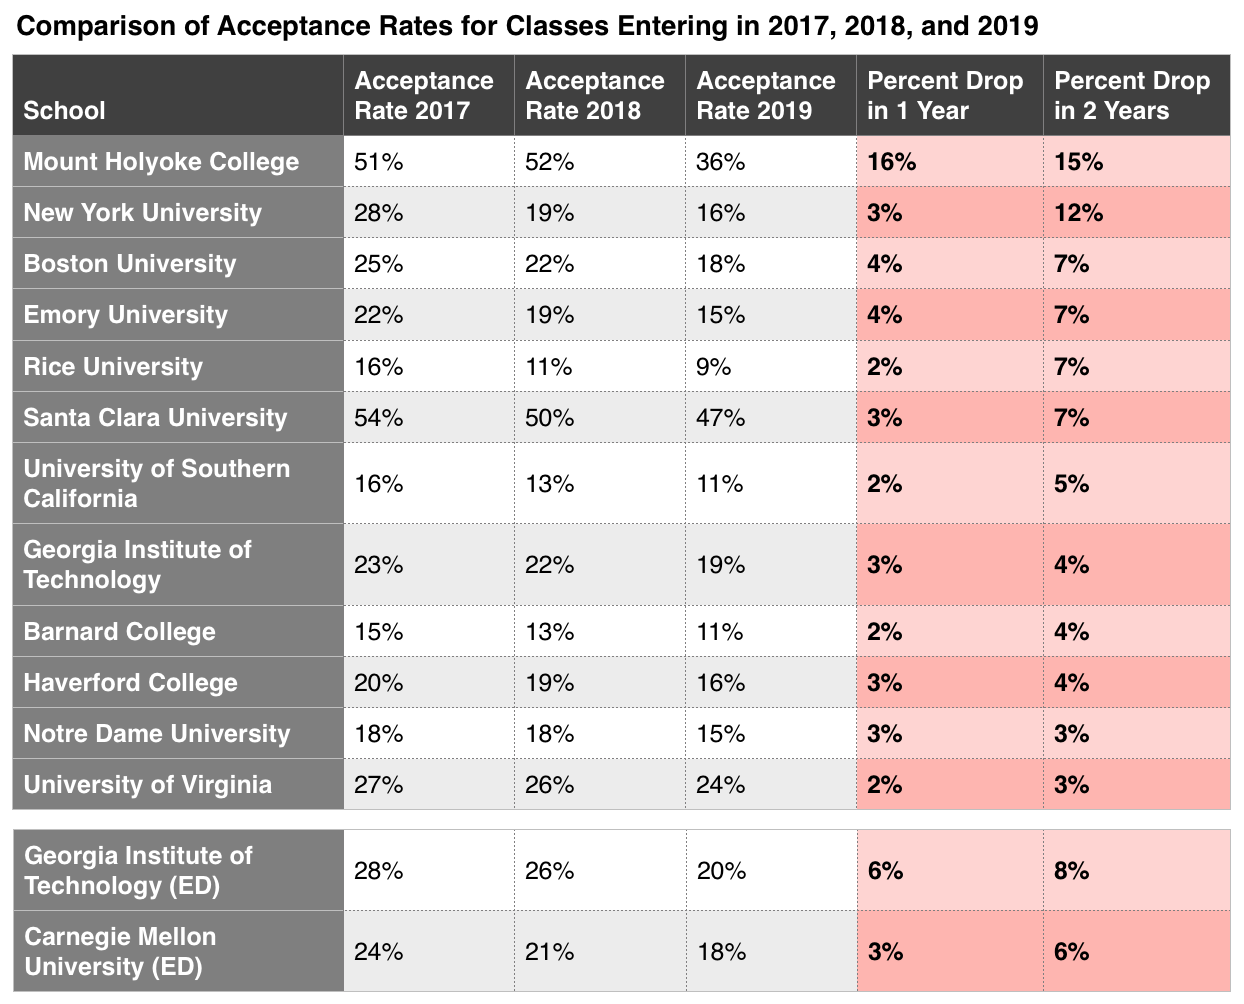 comparison of acceptance rates for classes entering in 2017, 2018, and 2019